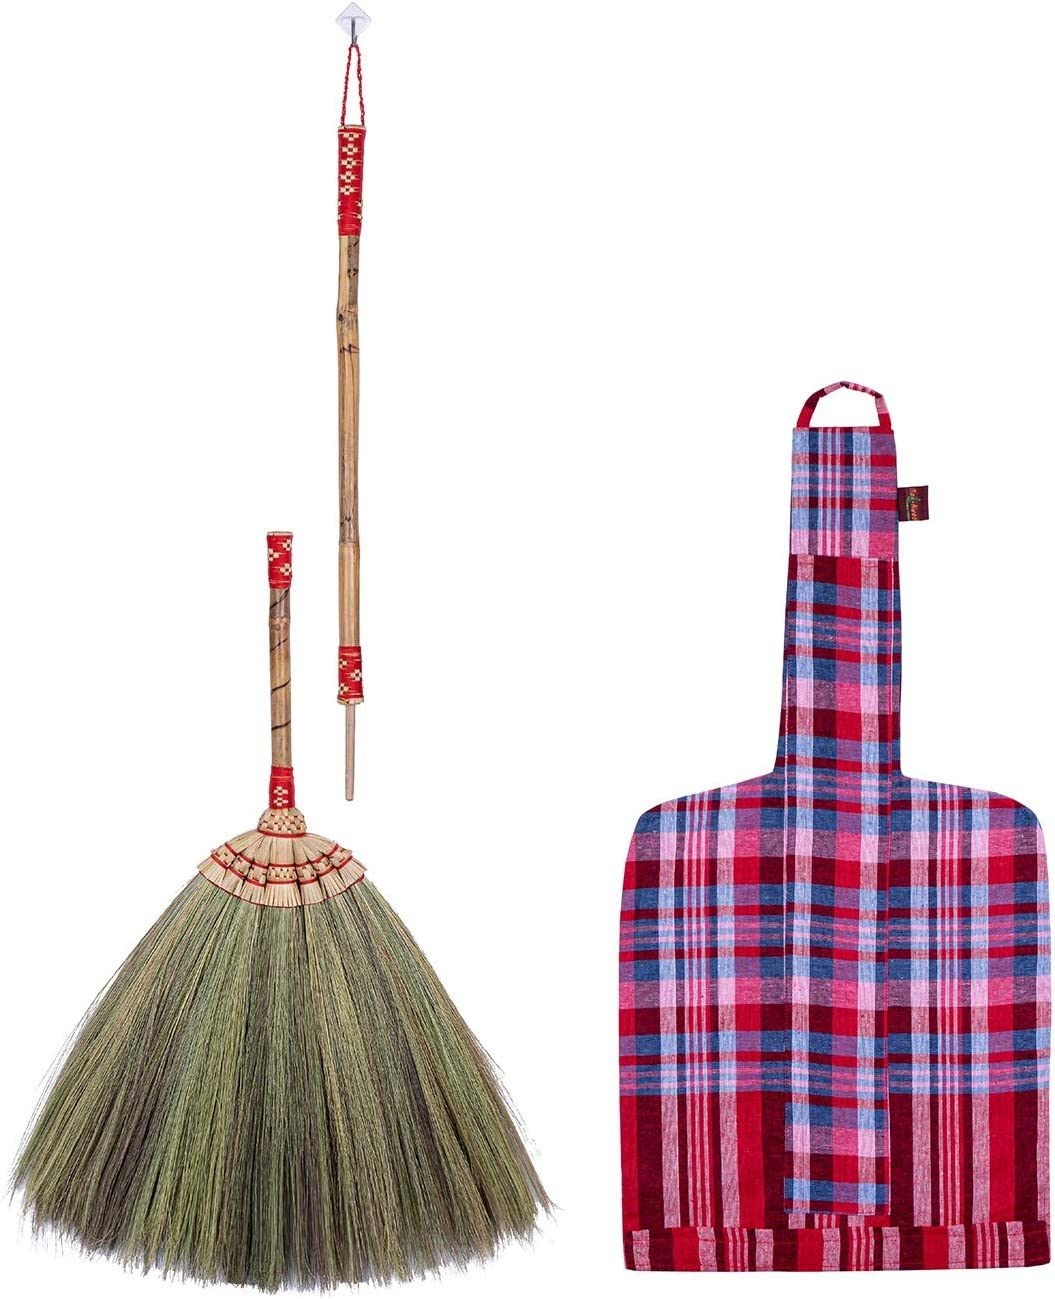 2 in 1 Natural Grass Broom Bamboo Stick Embroidered Woven Nylon Threads Handle Vintage Style Hand Grip with Papyrus & Dry Banana Leaf Size short 26